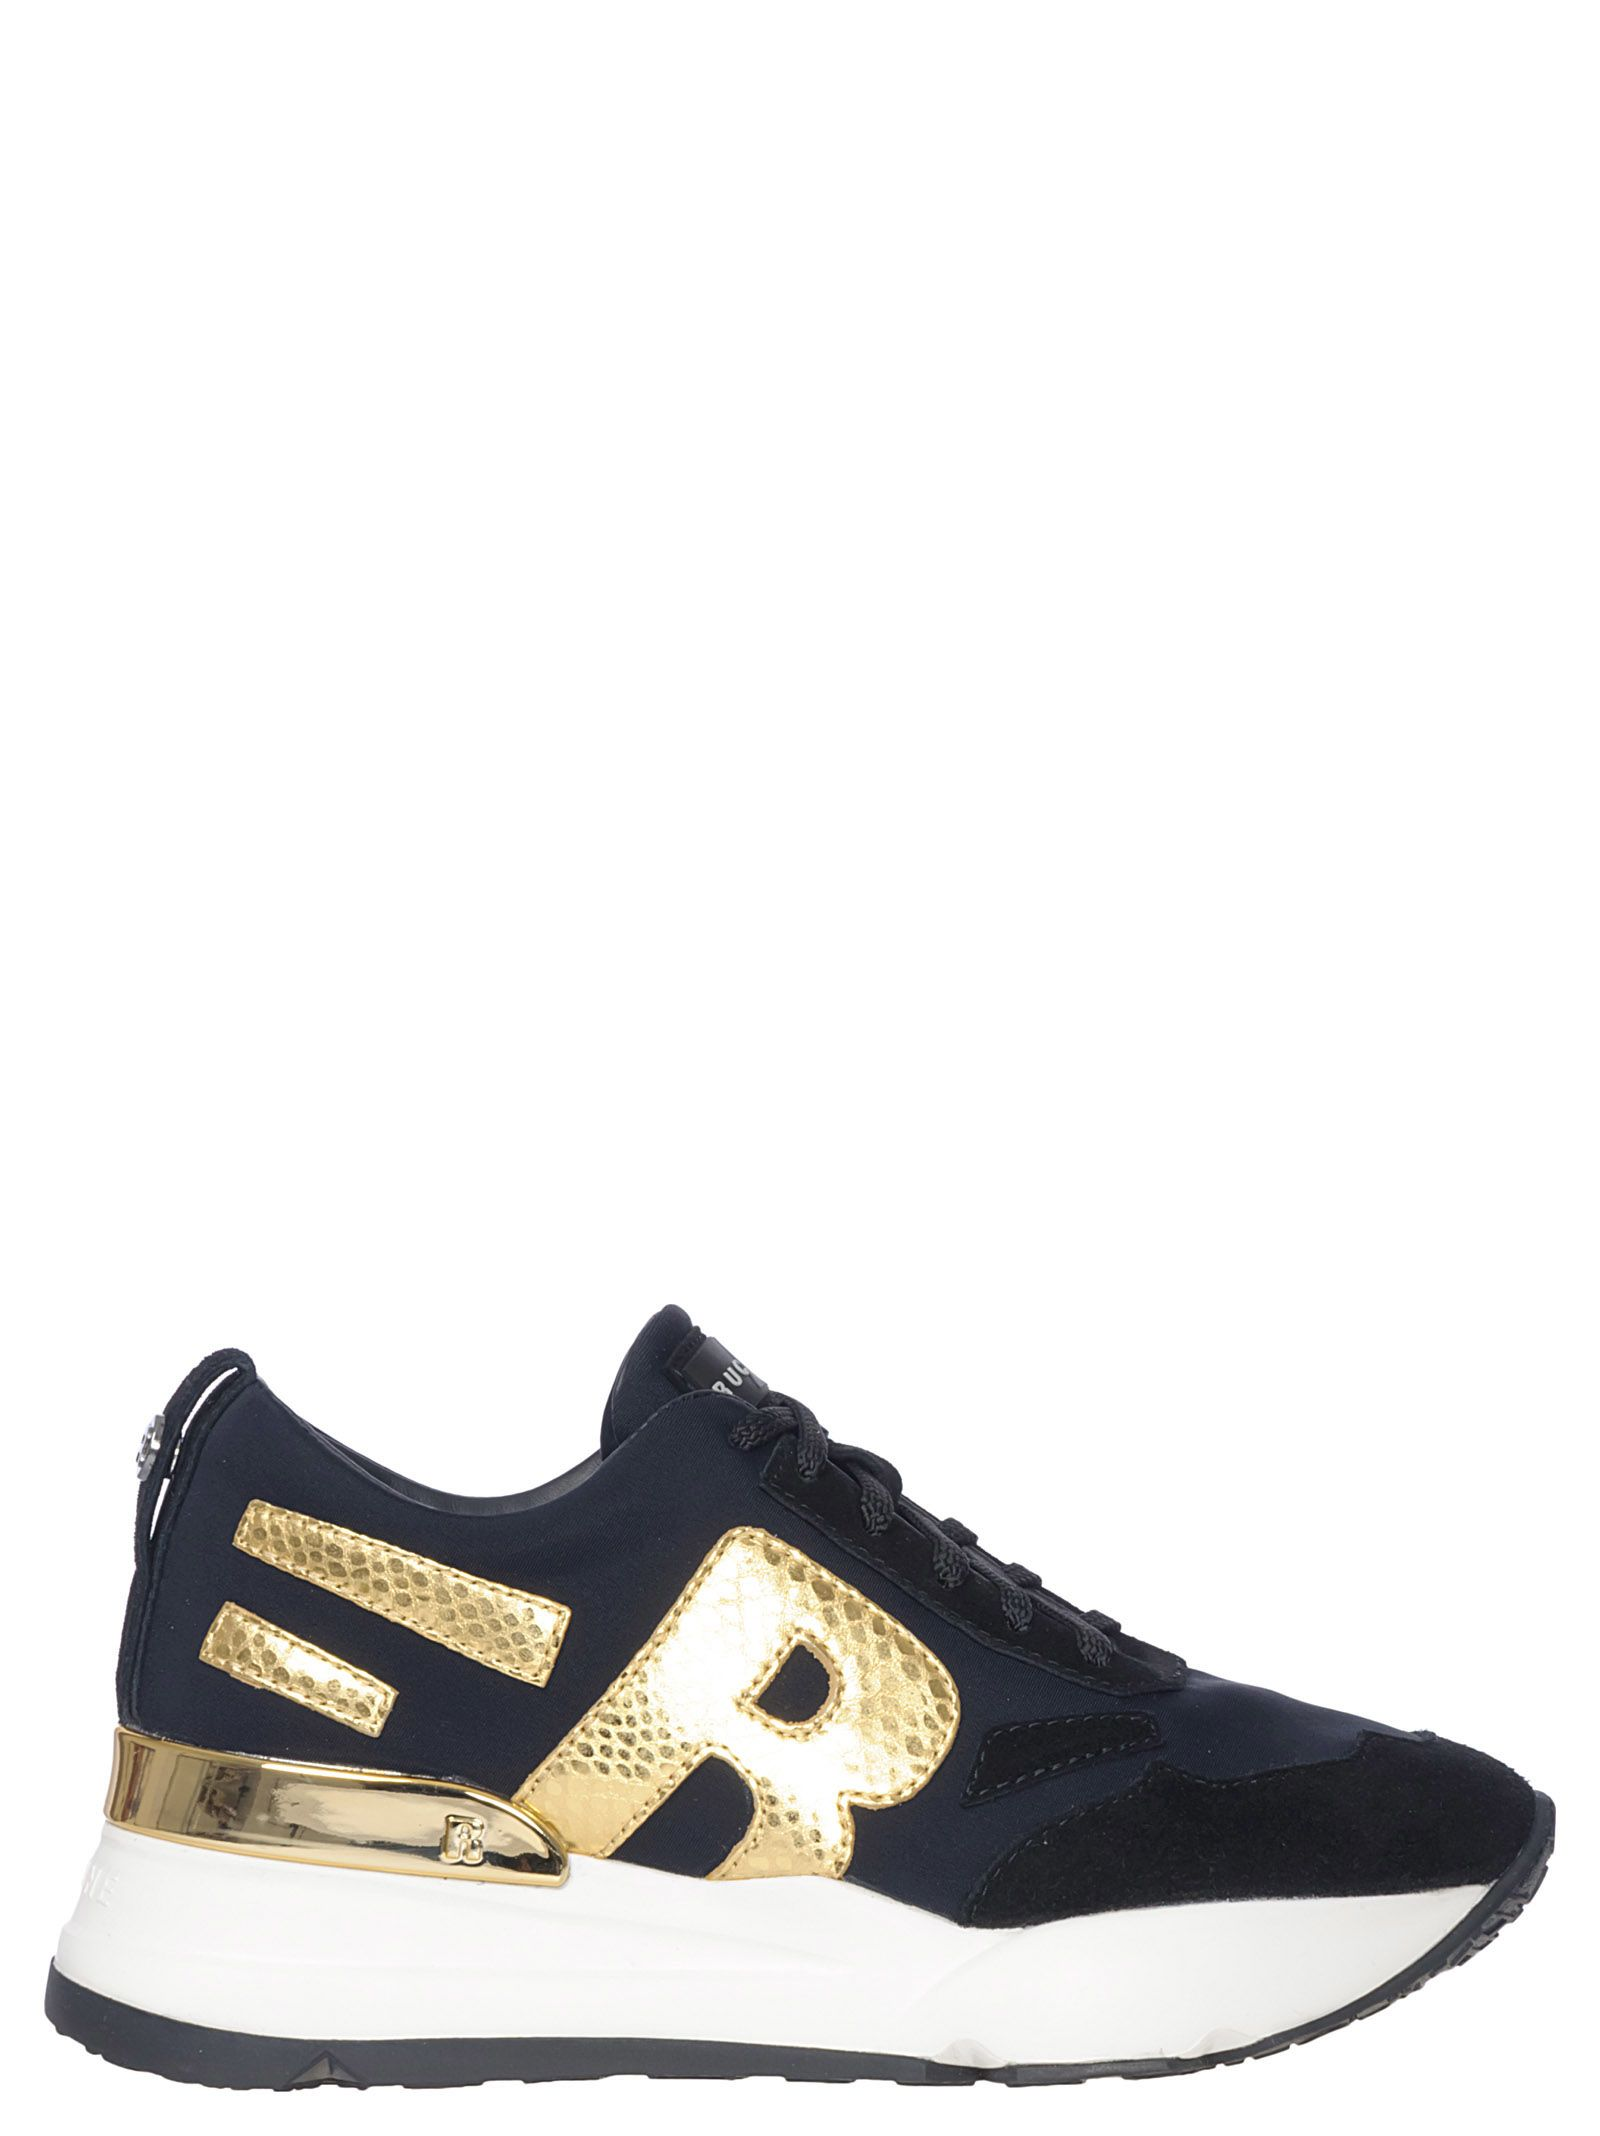 RUCOLINE Rucoline Sneakers Melog in Nero